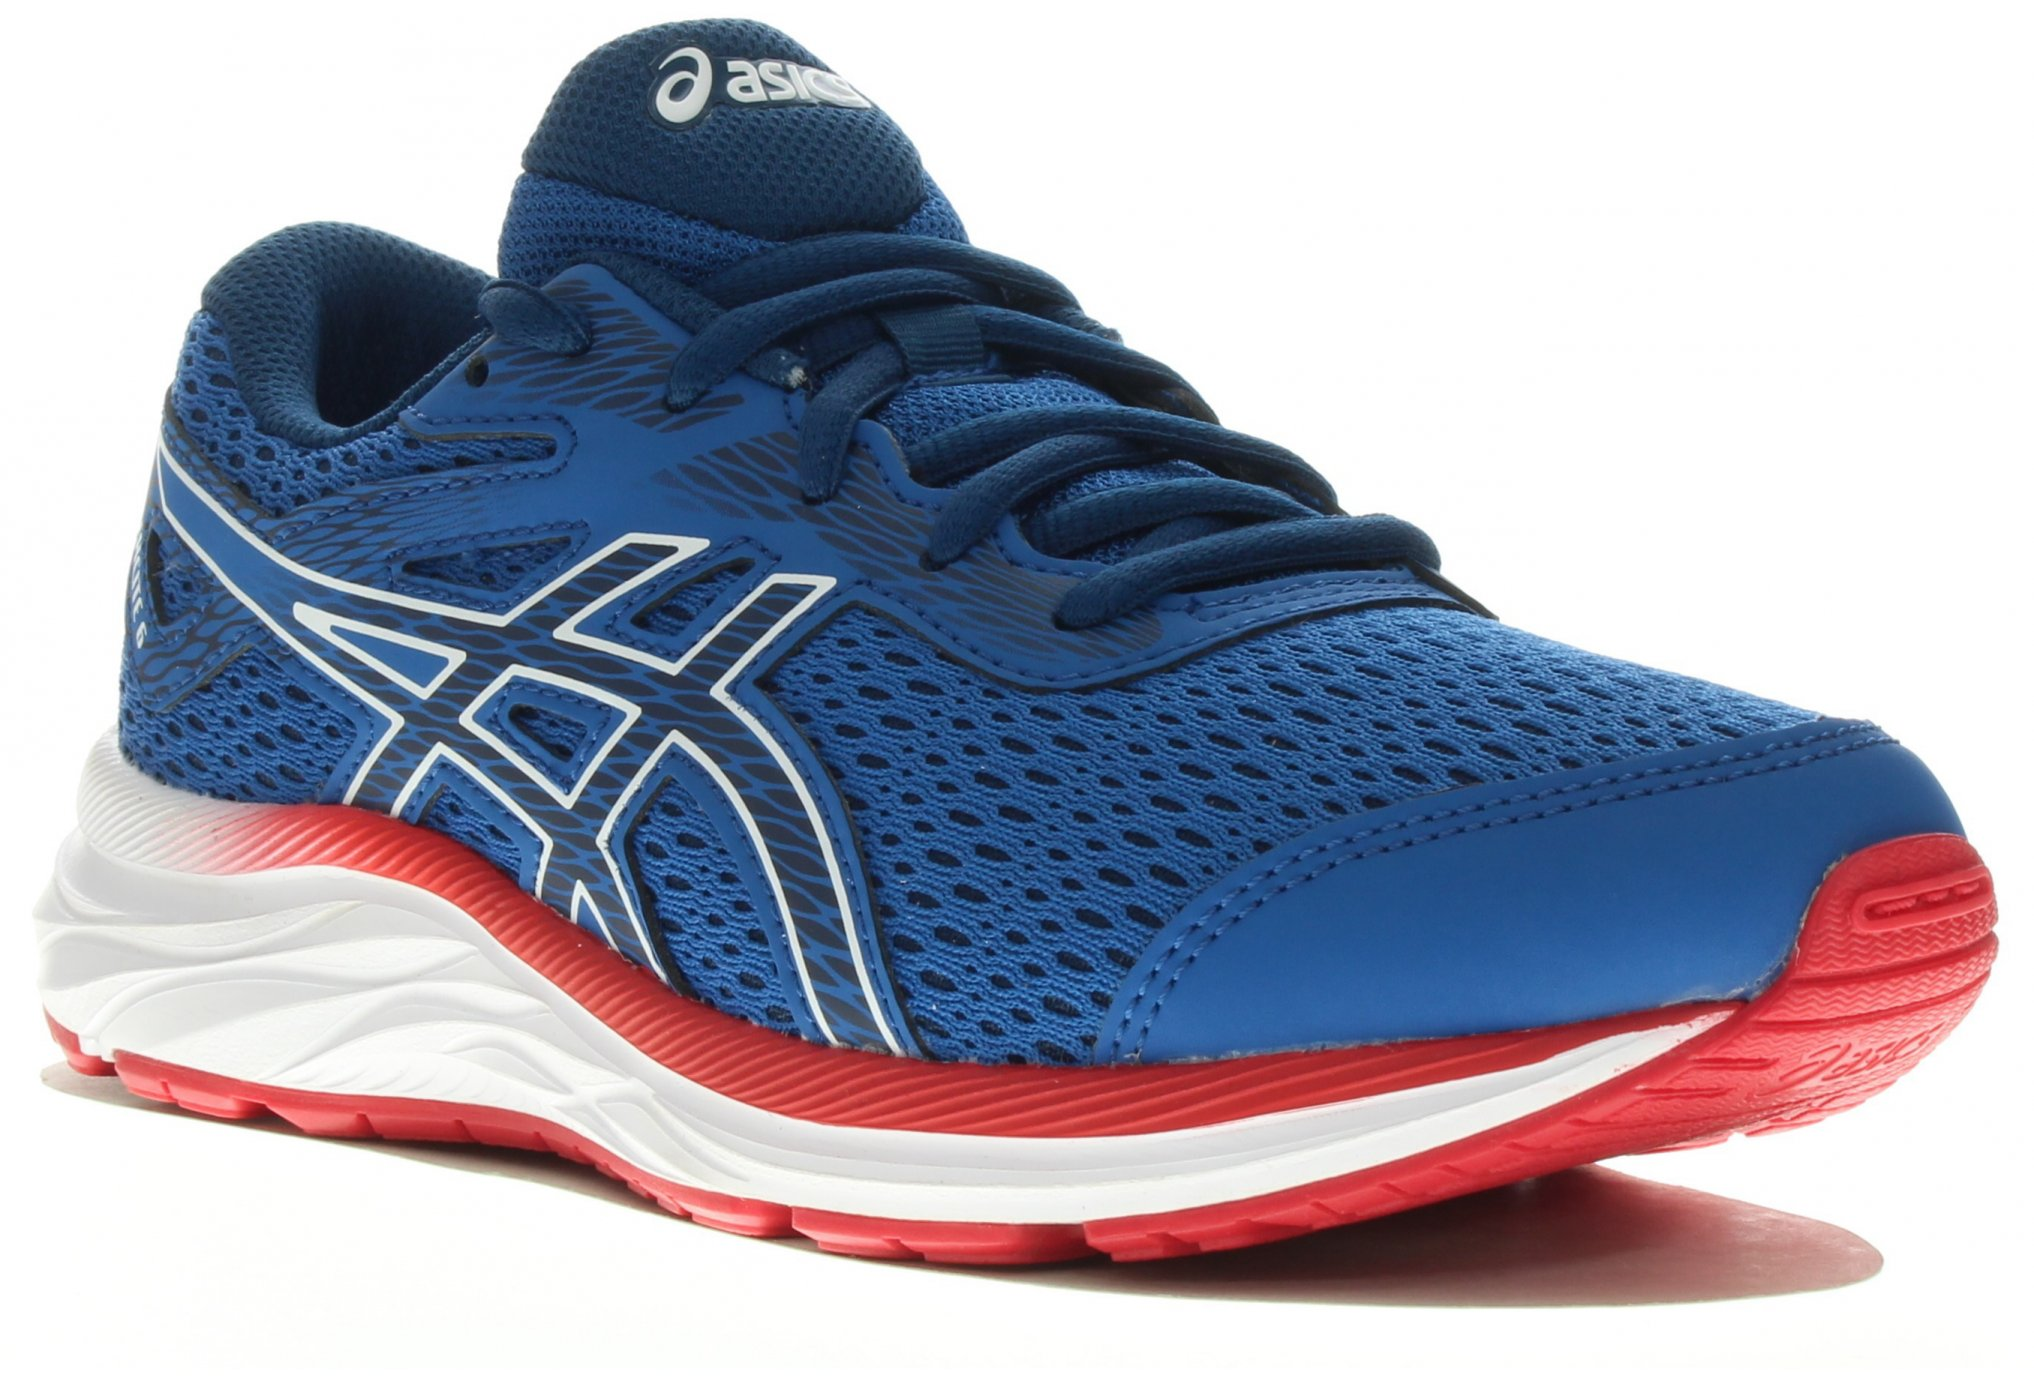 Asics Gel-Excite 6 Chaussures homme